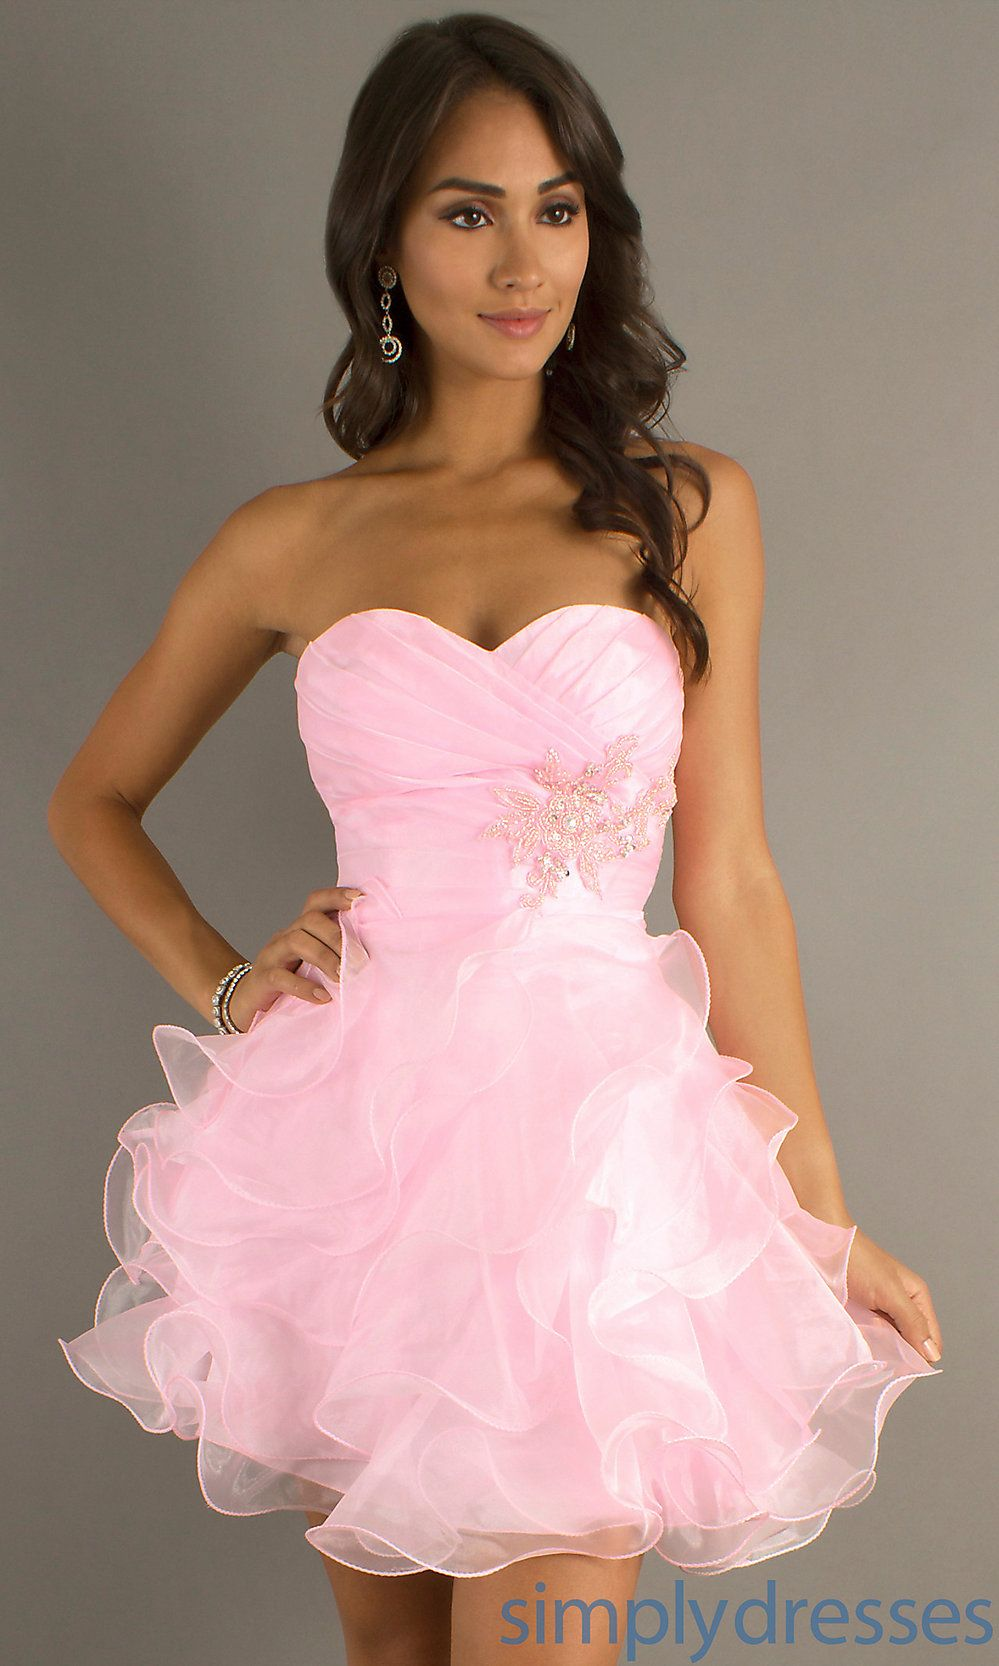 Pretty! Short Strapless Dresses, Pink Short Prom Dresses - Simply ...